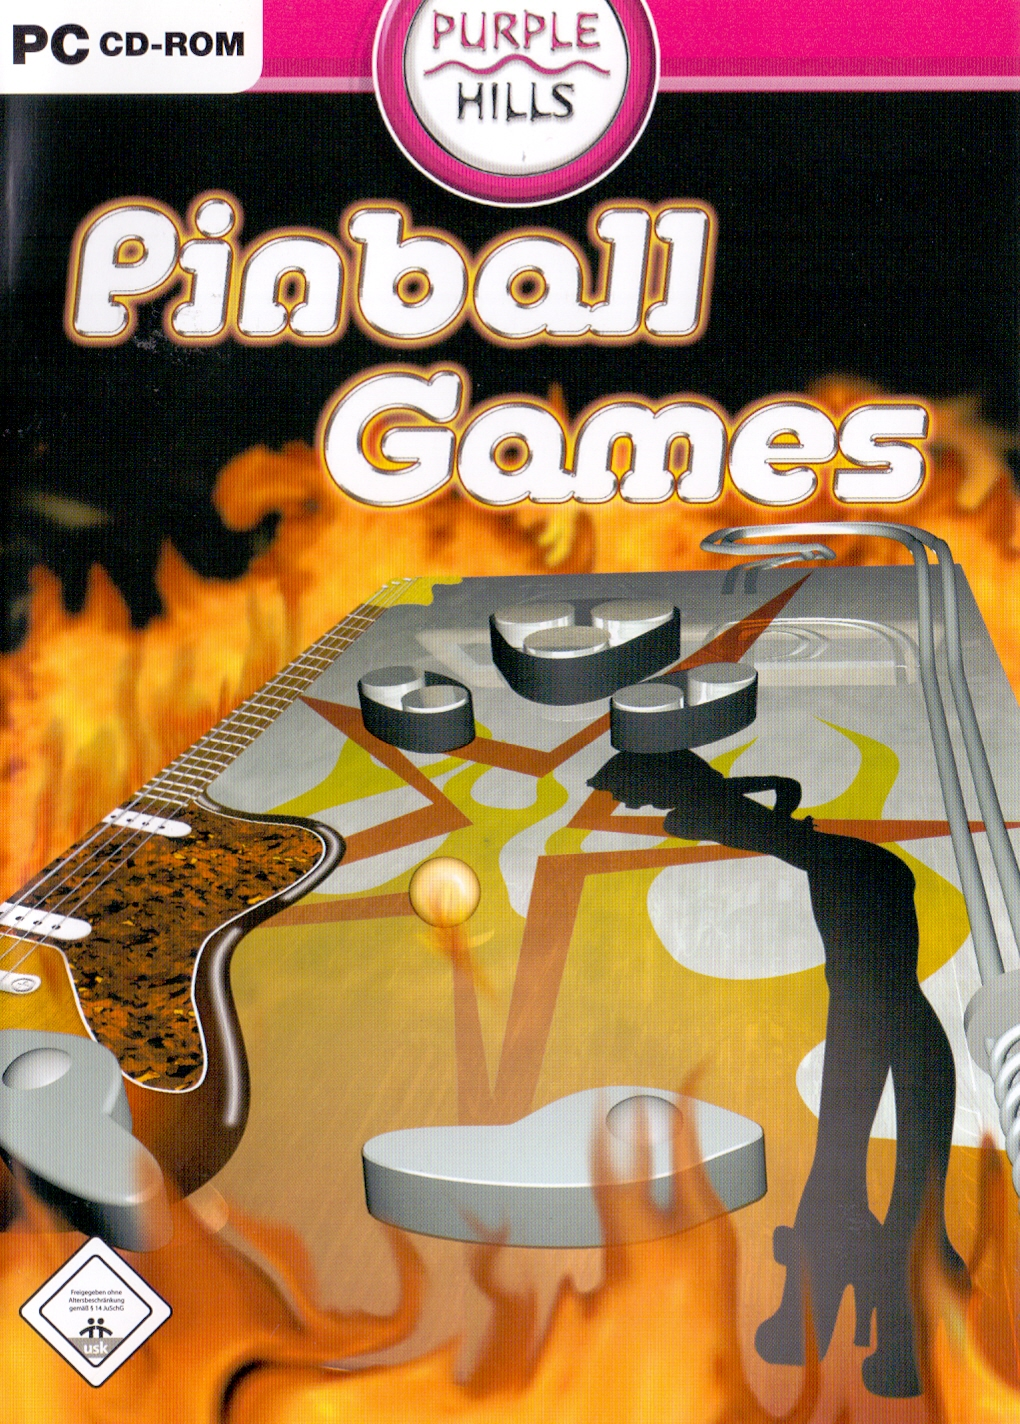 Pinball Games [Purple Hills]